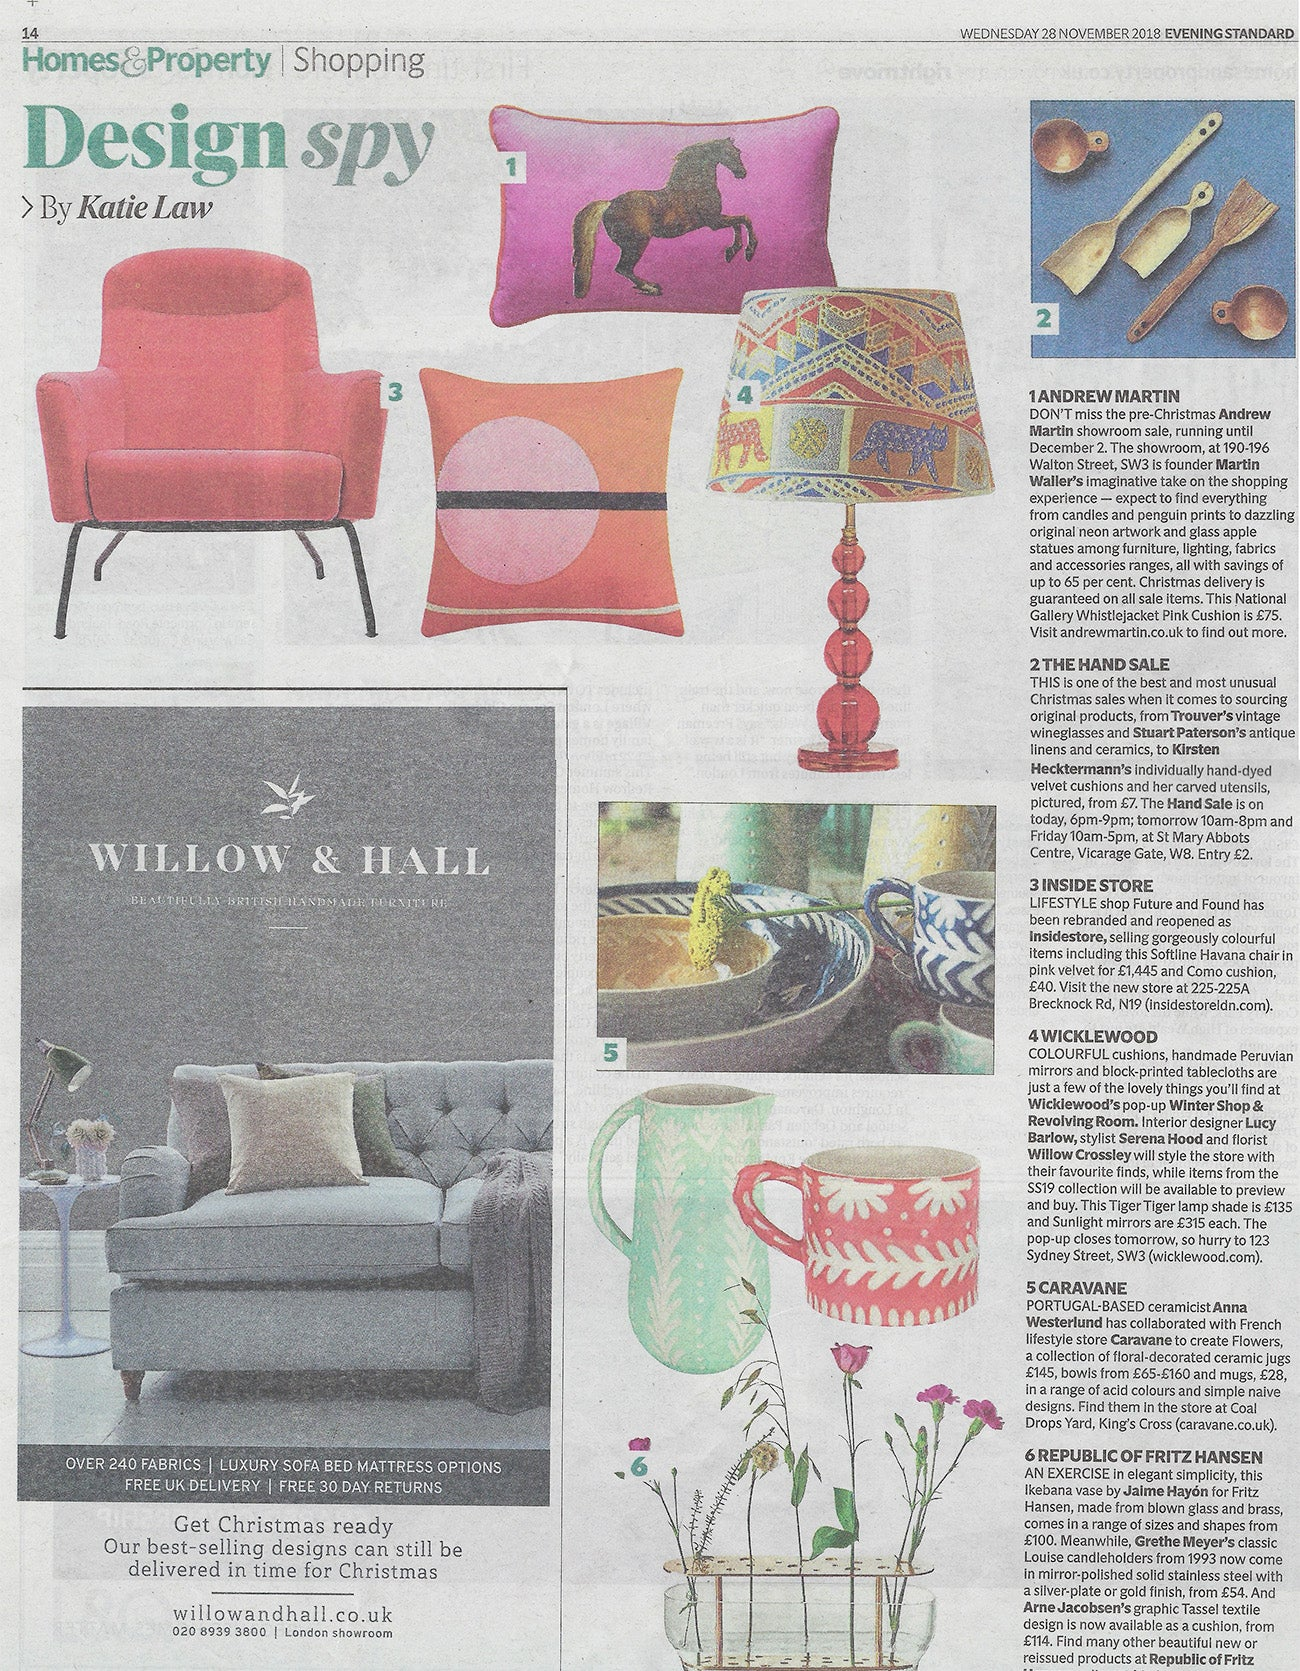 Evening Standard Design Spy November featuring Wicklewood X Pooky Tiger Tiger Lampshade